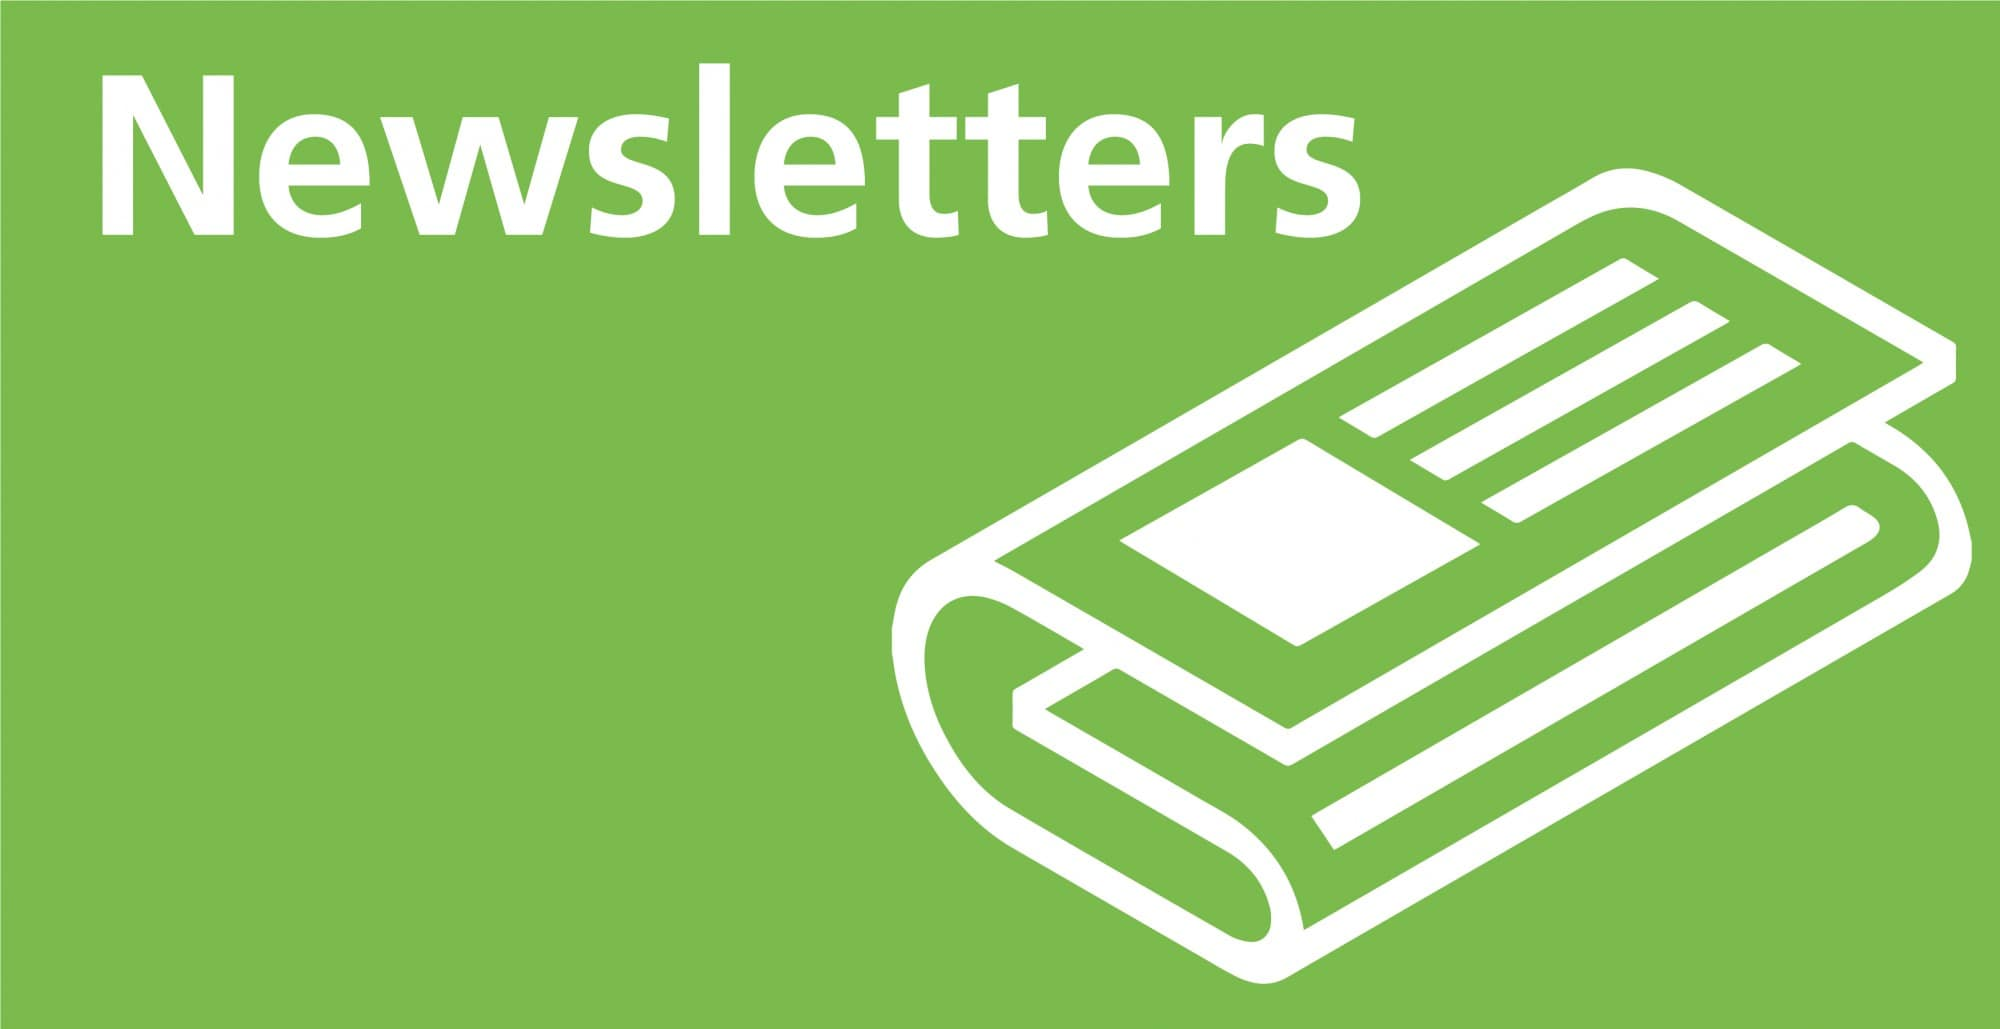 Newsletters and publications